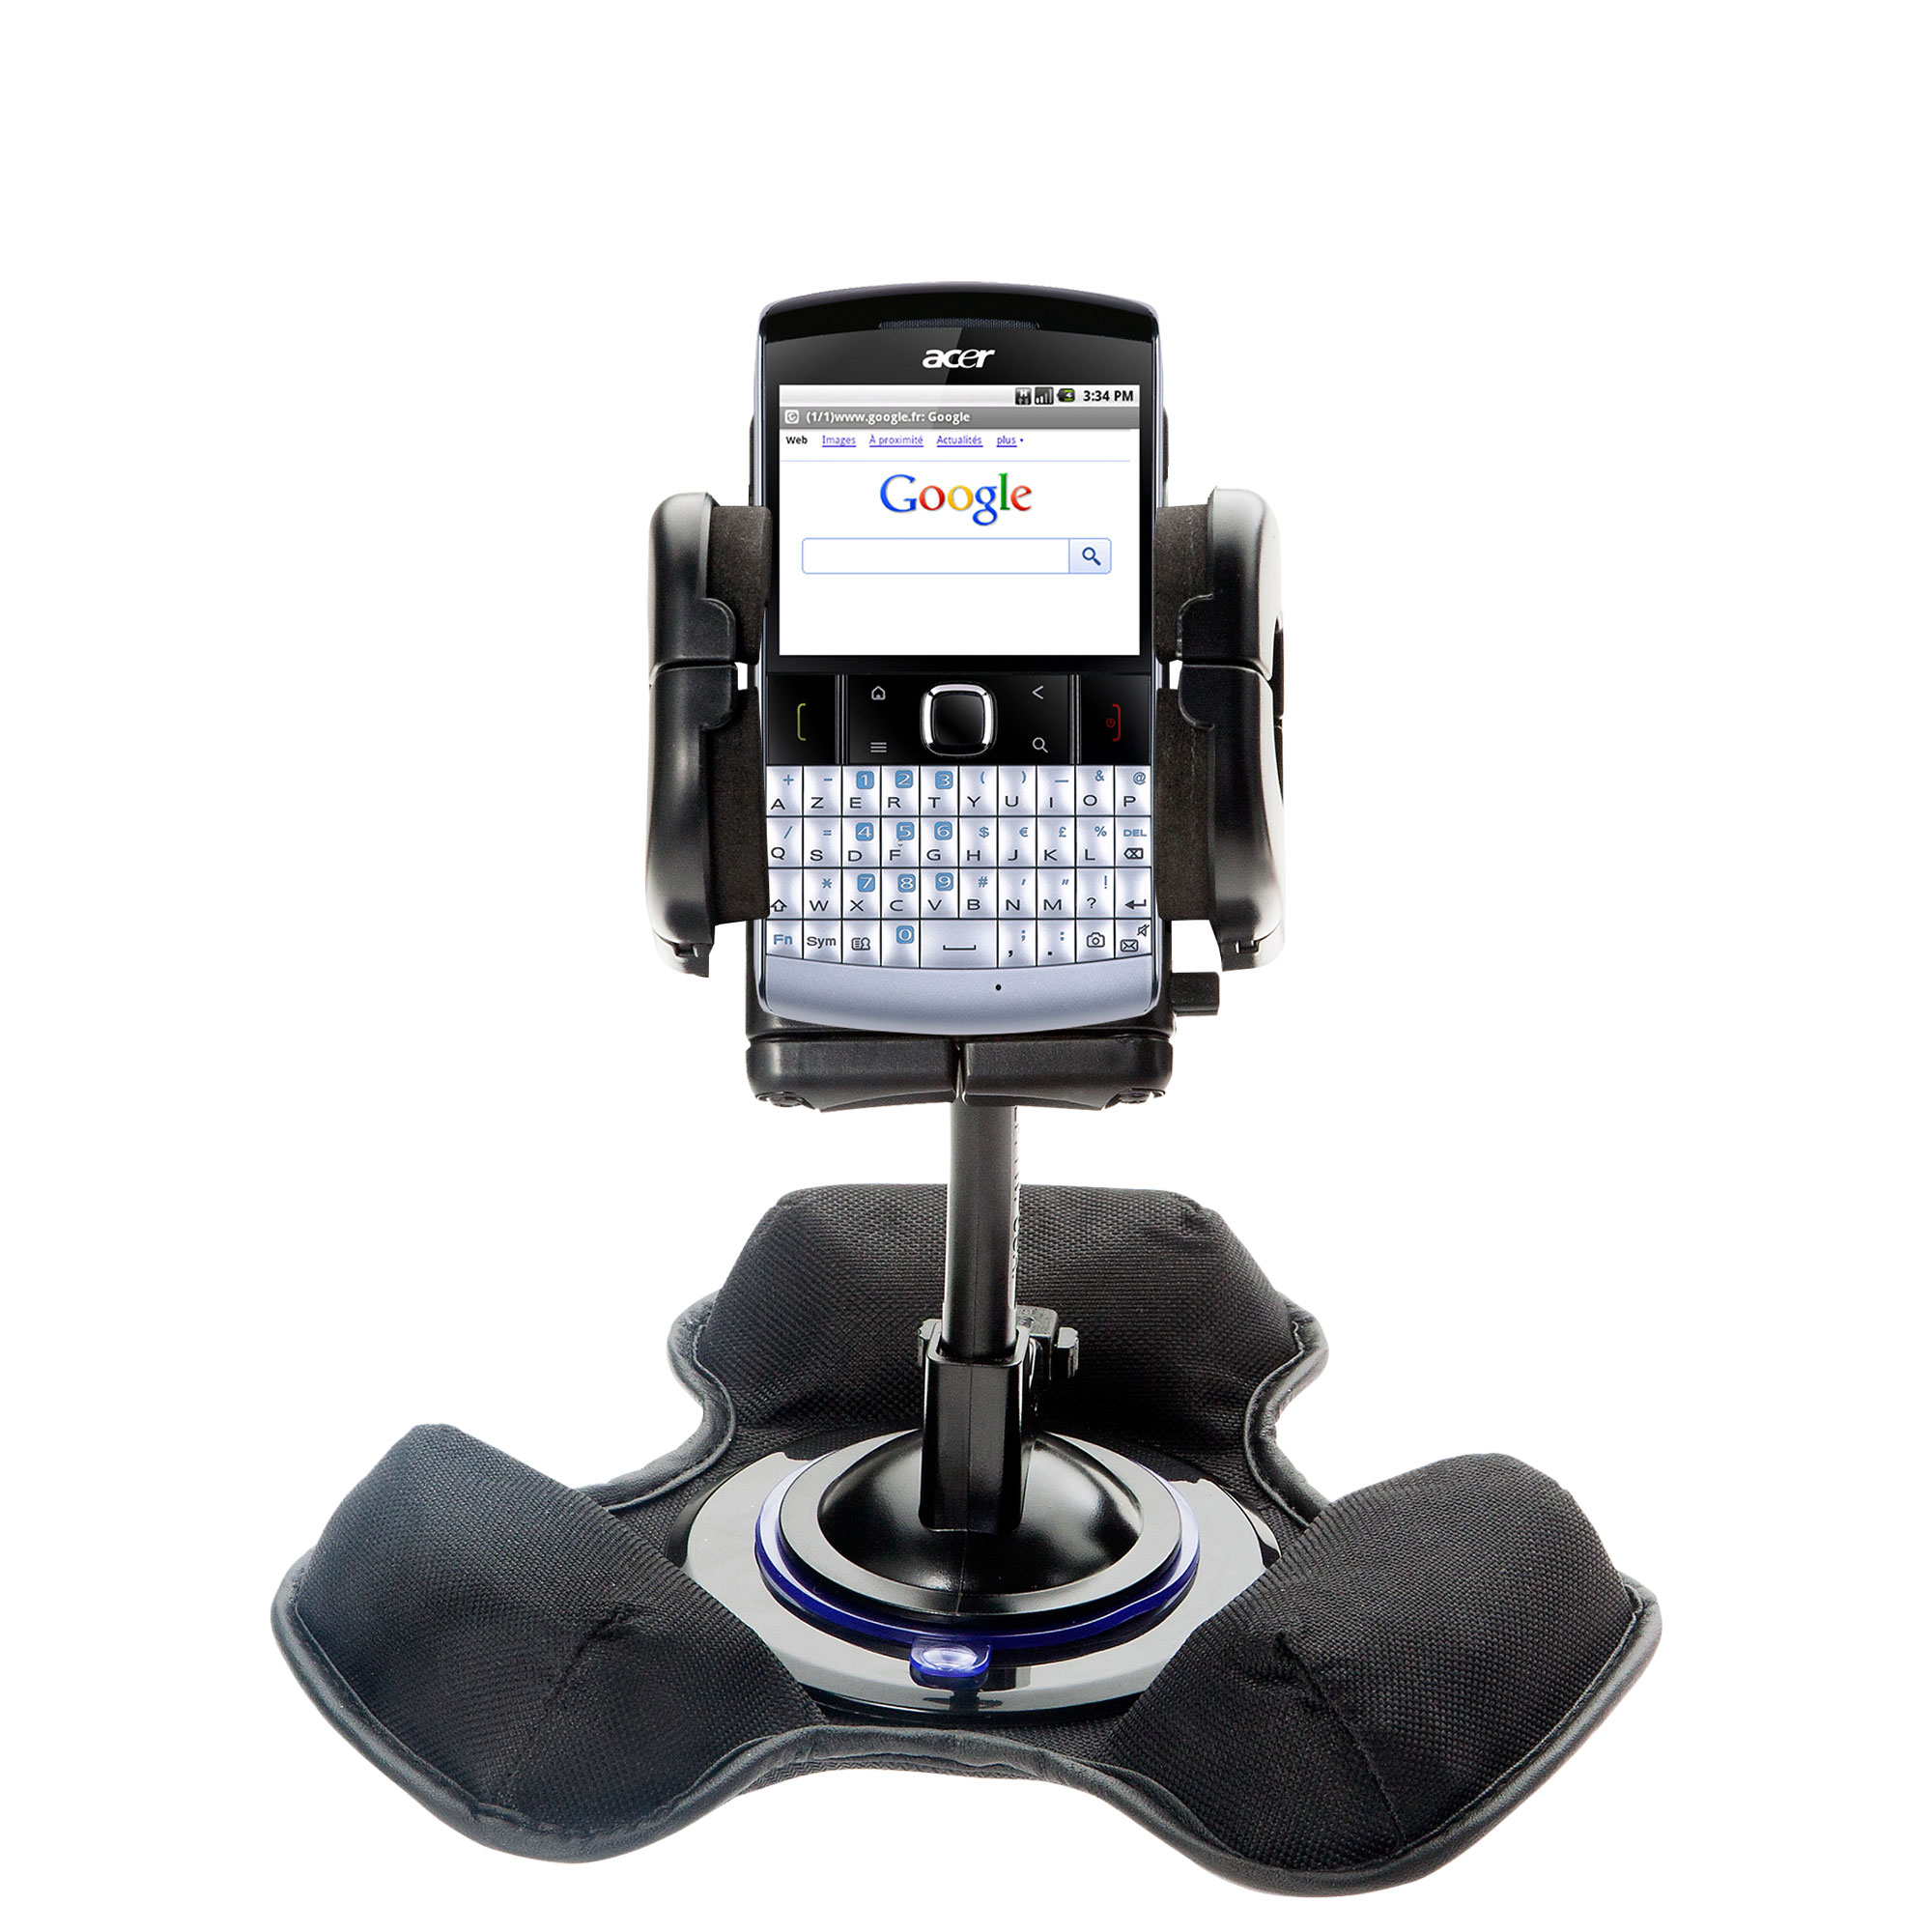 Dash and Windshield Holder compatible with the Acer beTouch E200 E210